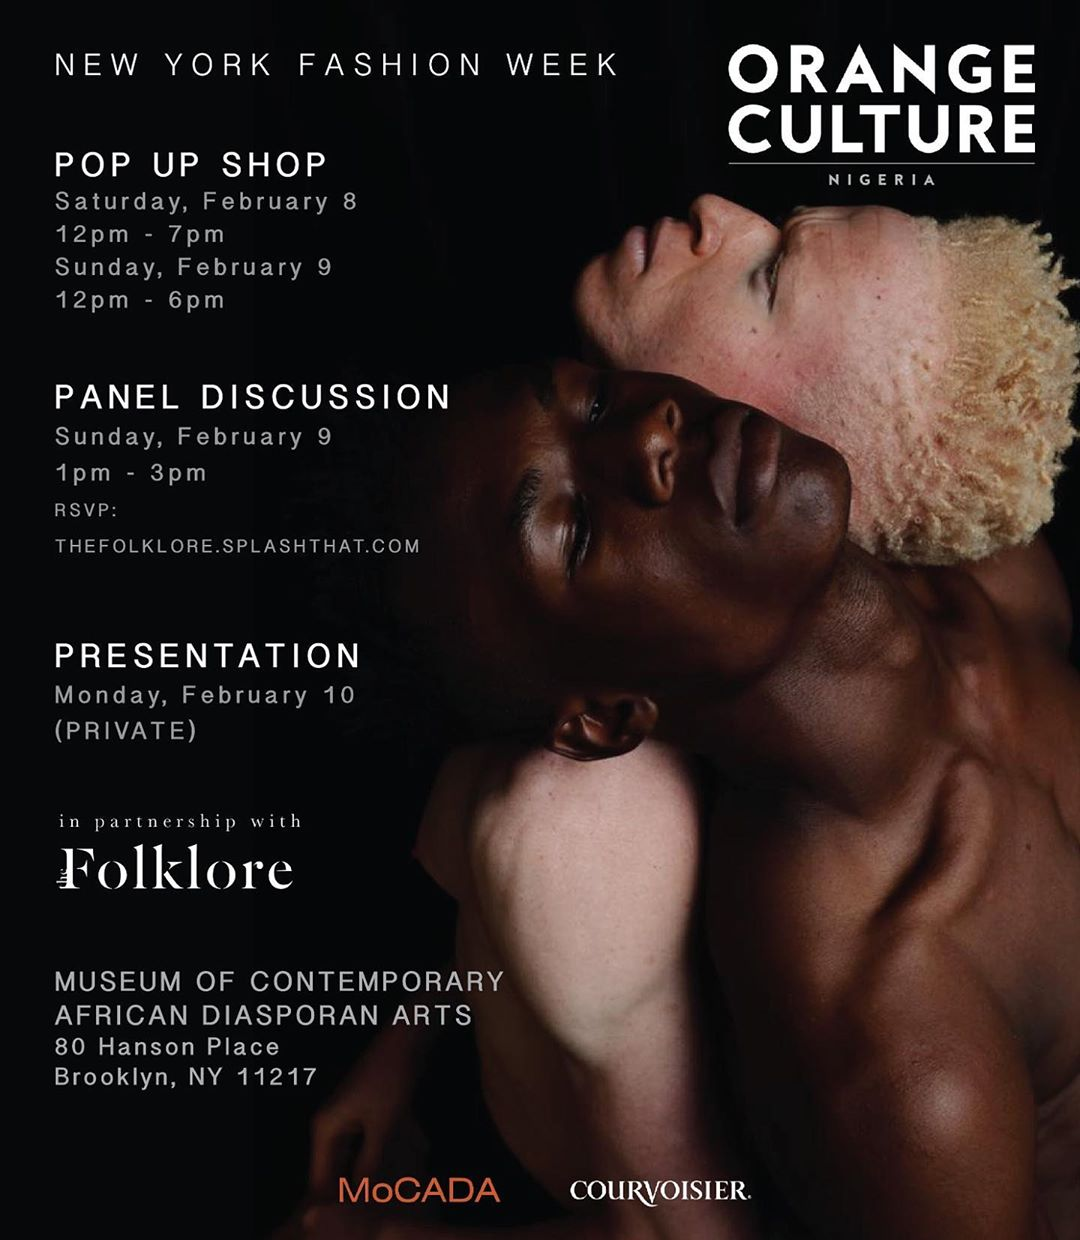 You're Invited! Orange Culture's NYFW Fall 2020 Presentation, Pop Up Shop & Panel Discussion | BN Style